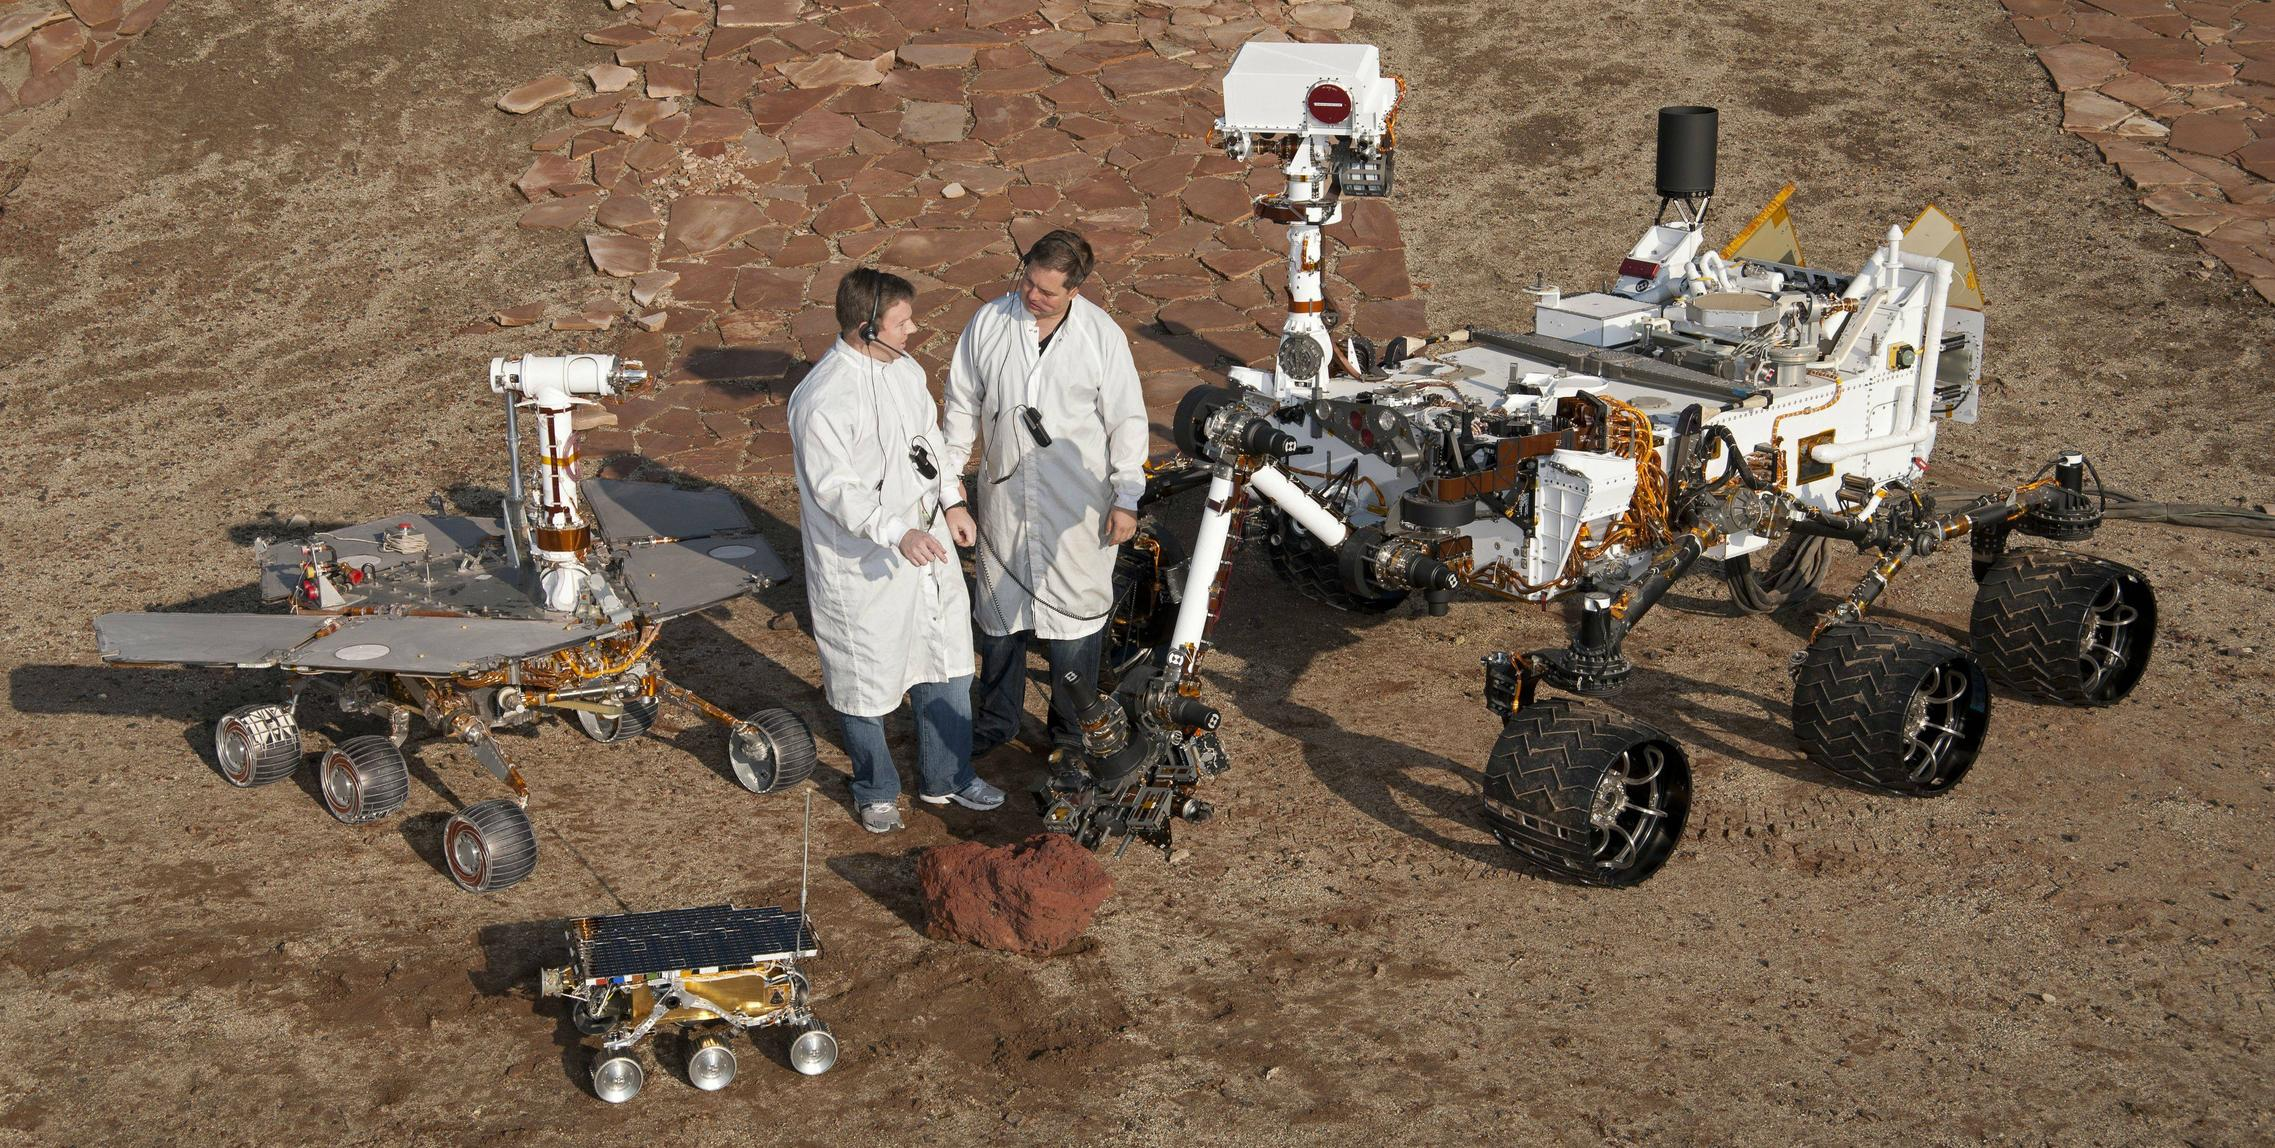 Curiosity day - Curiosity's size compared to other rovers